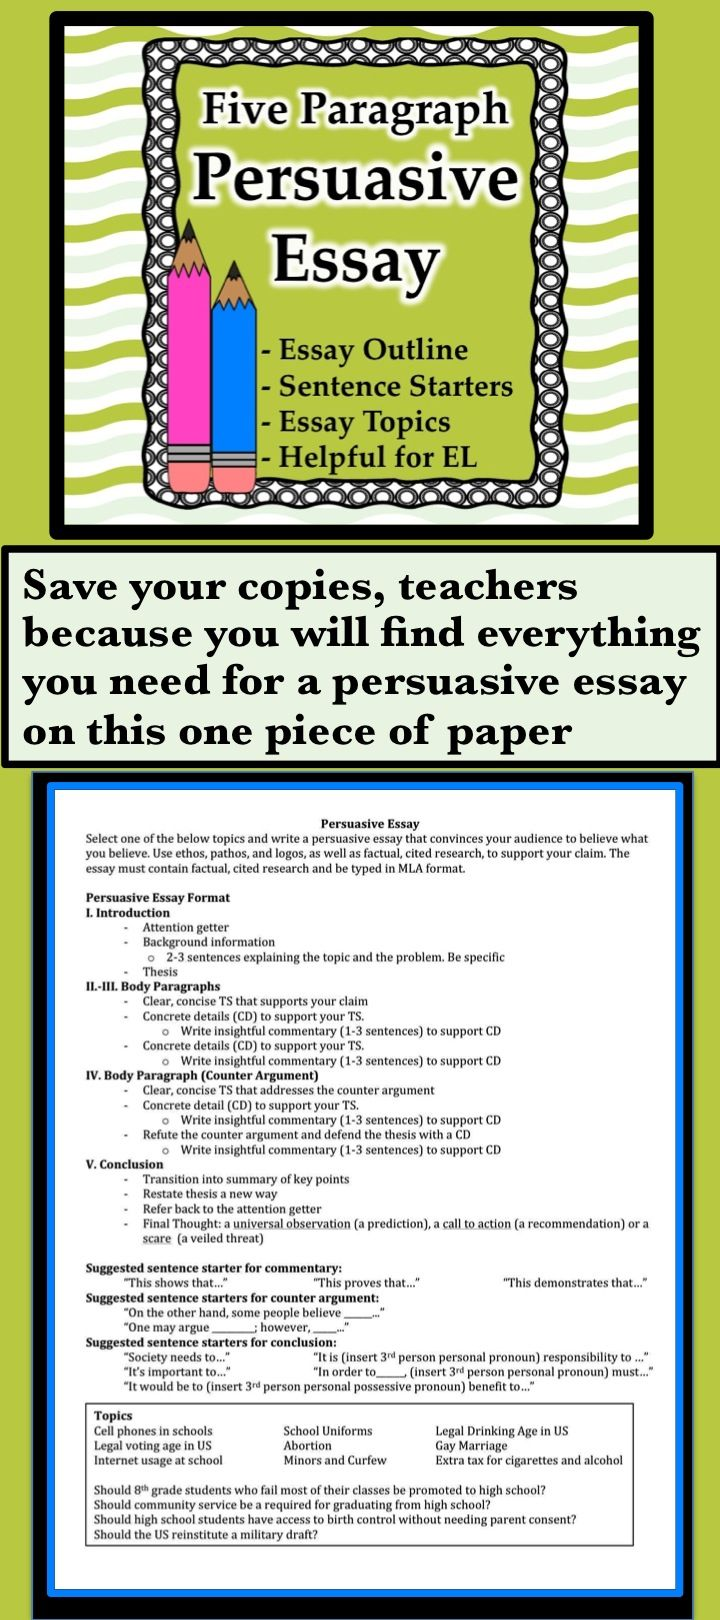 best images about persuasive opinion writing a one pager that contains everything even esl support for a persuasive essay